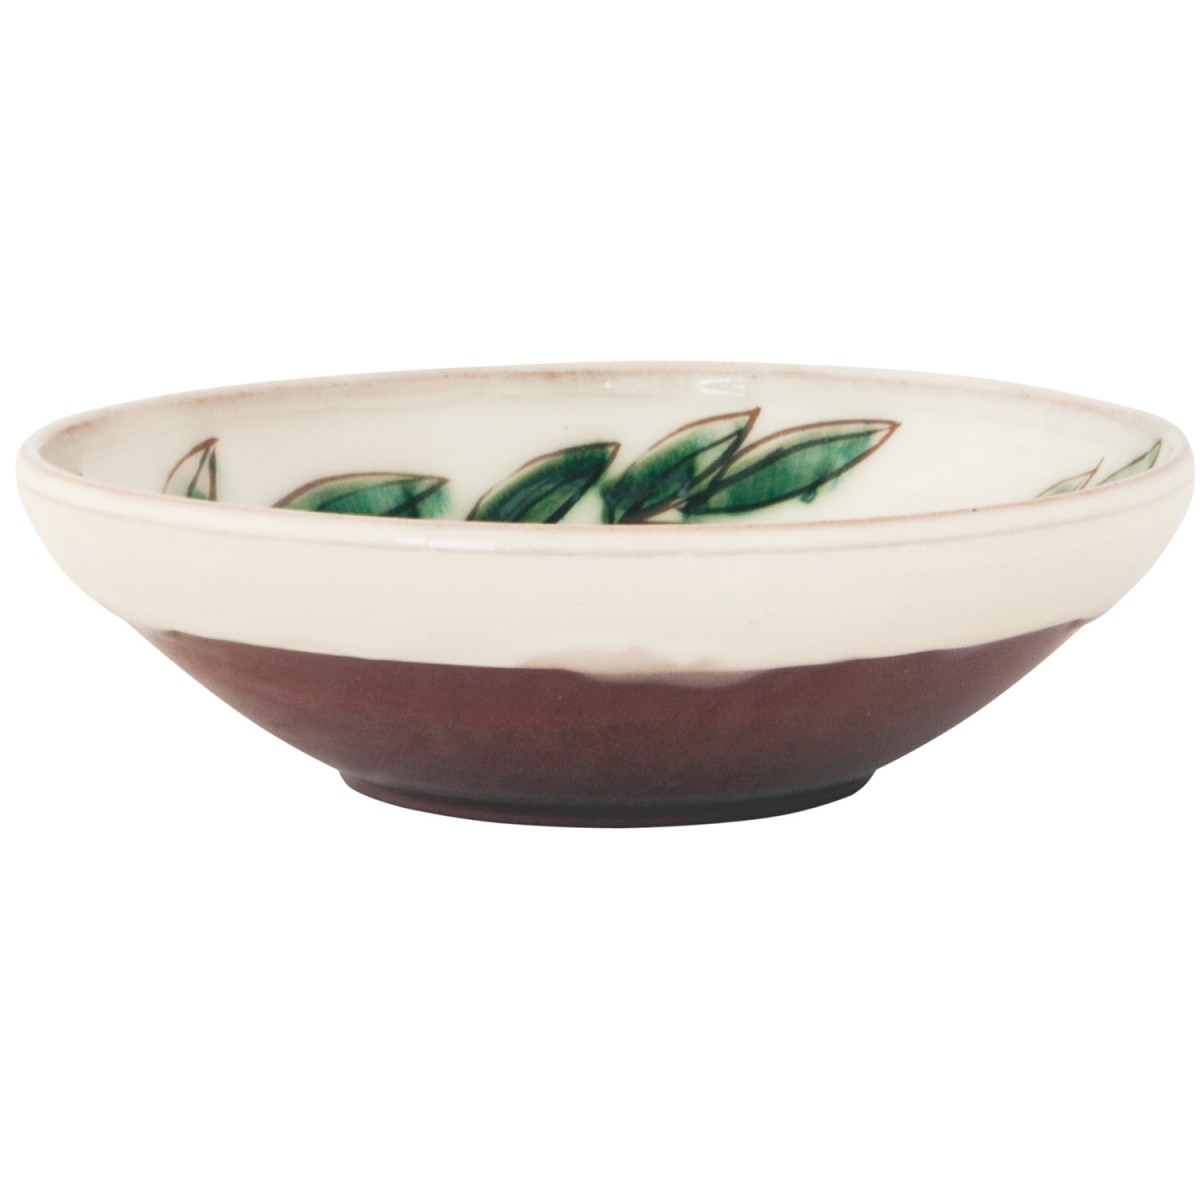 Pottery bowls for sale